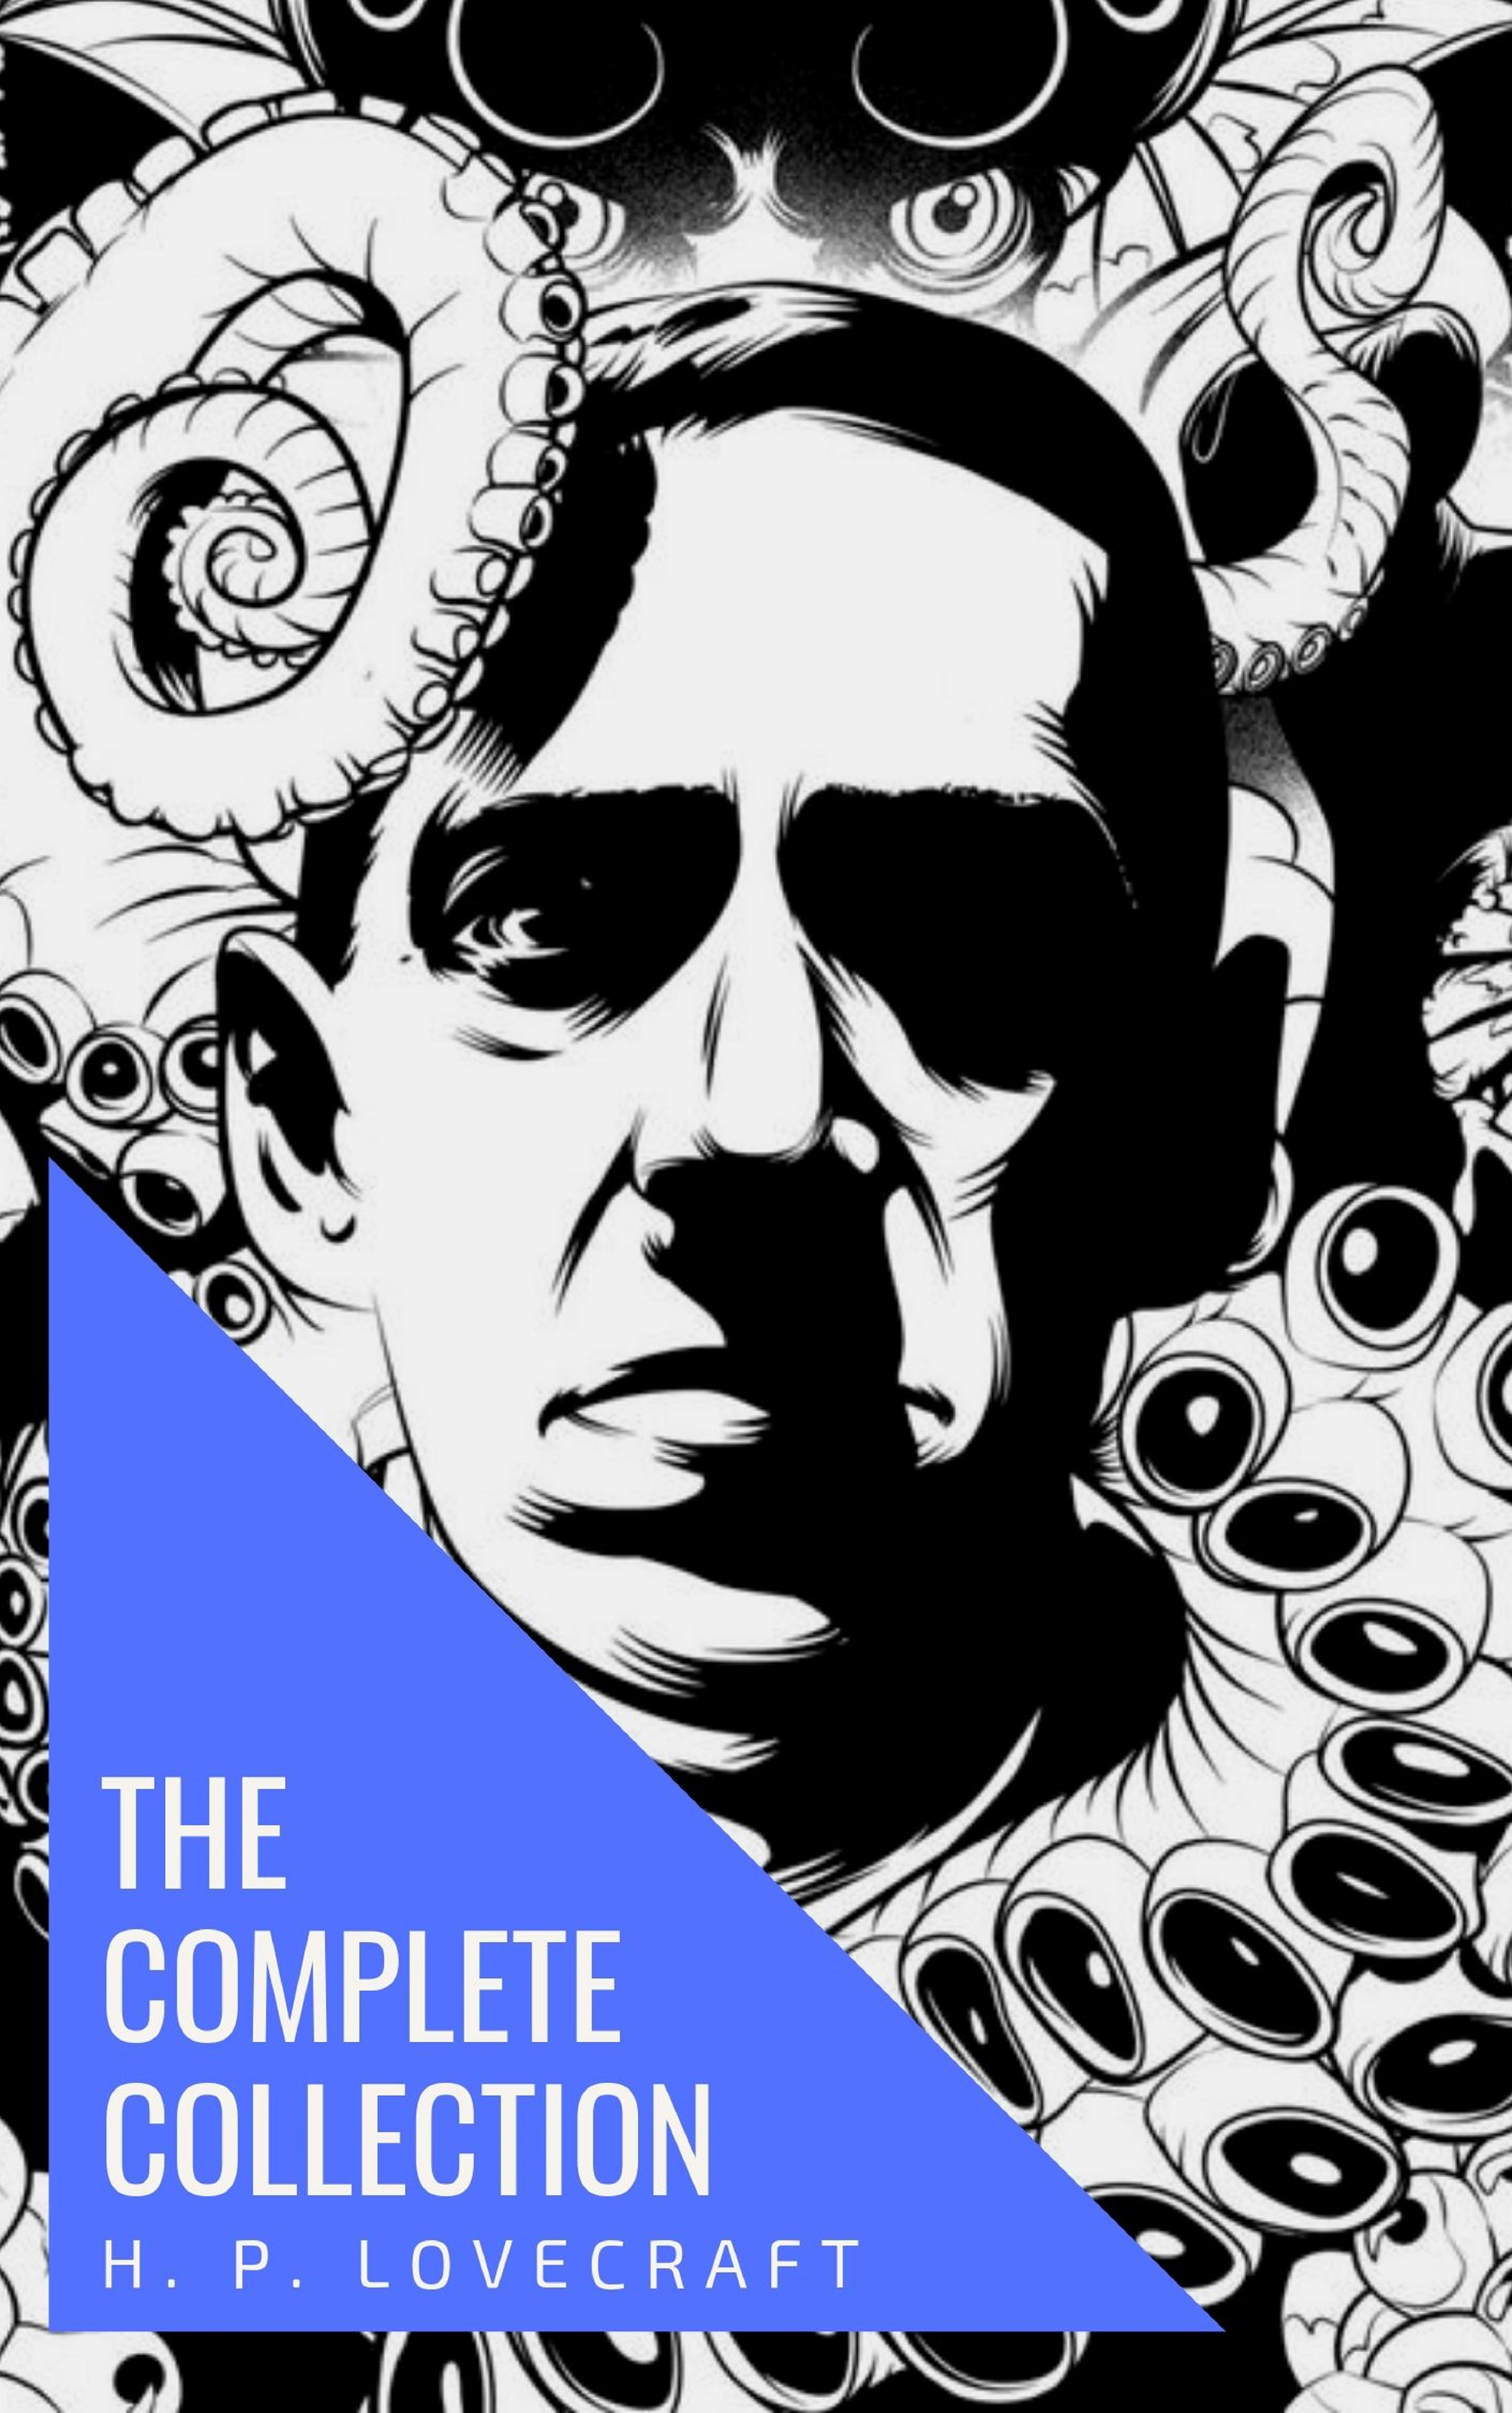 Говард Филлипс Лавкрафт The Complete Collection of H. P. Lovecraft h p lovecraft the complete fiction of h p lovecraft